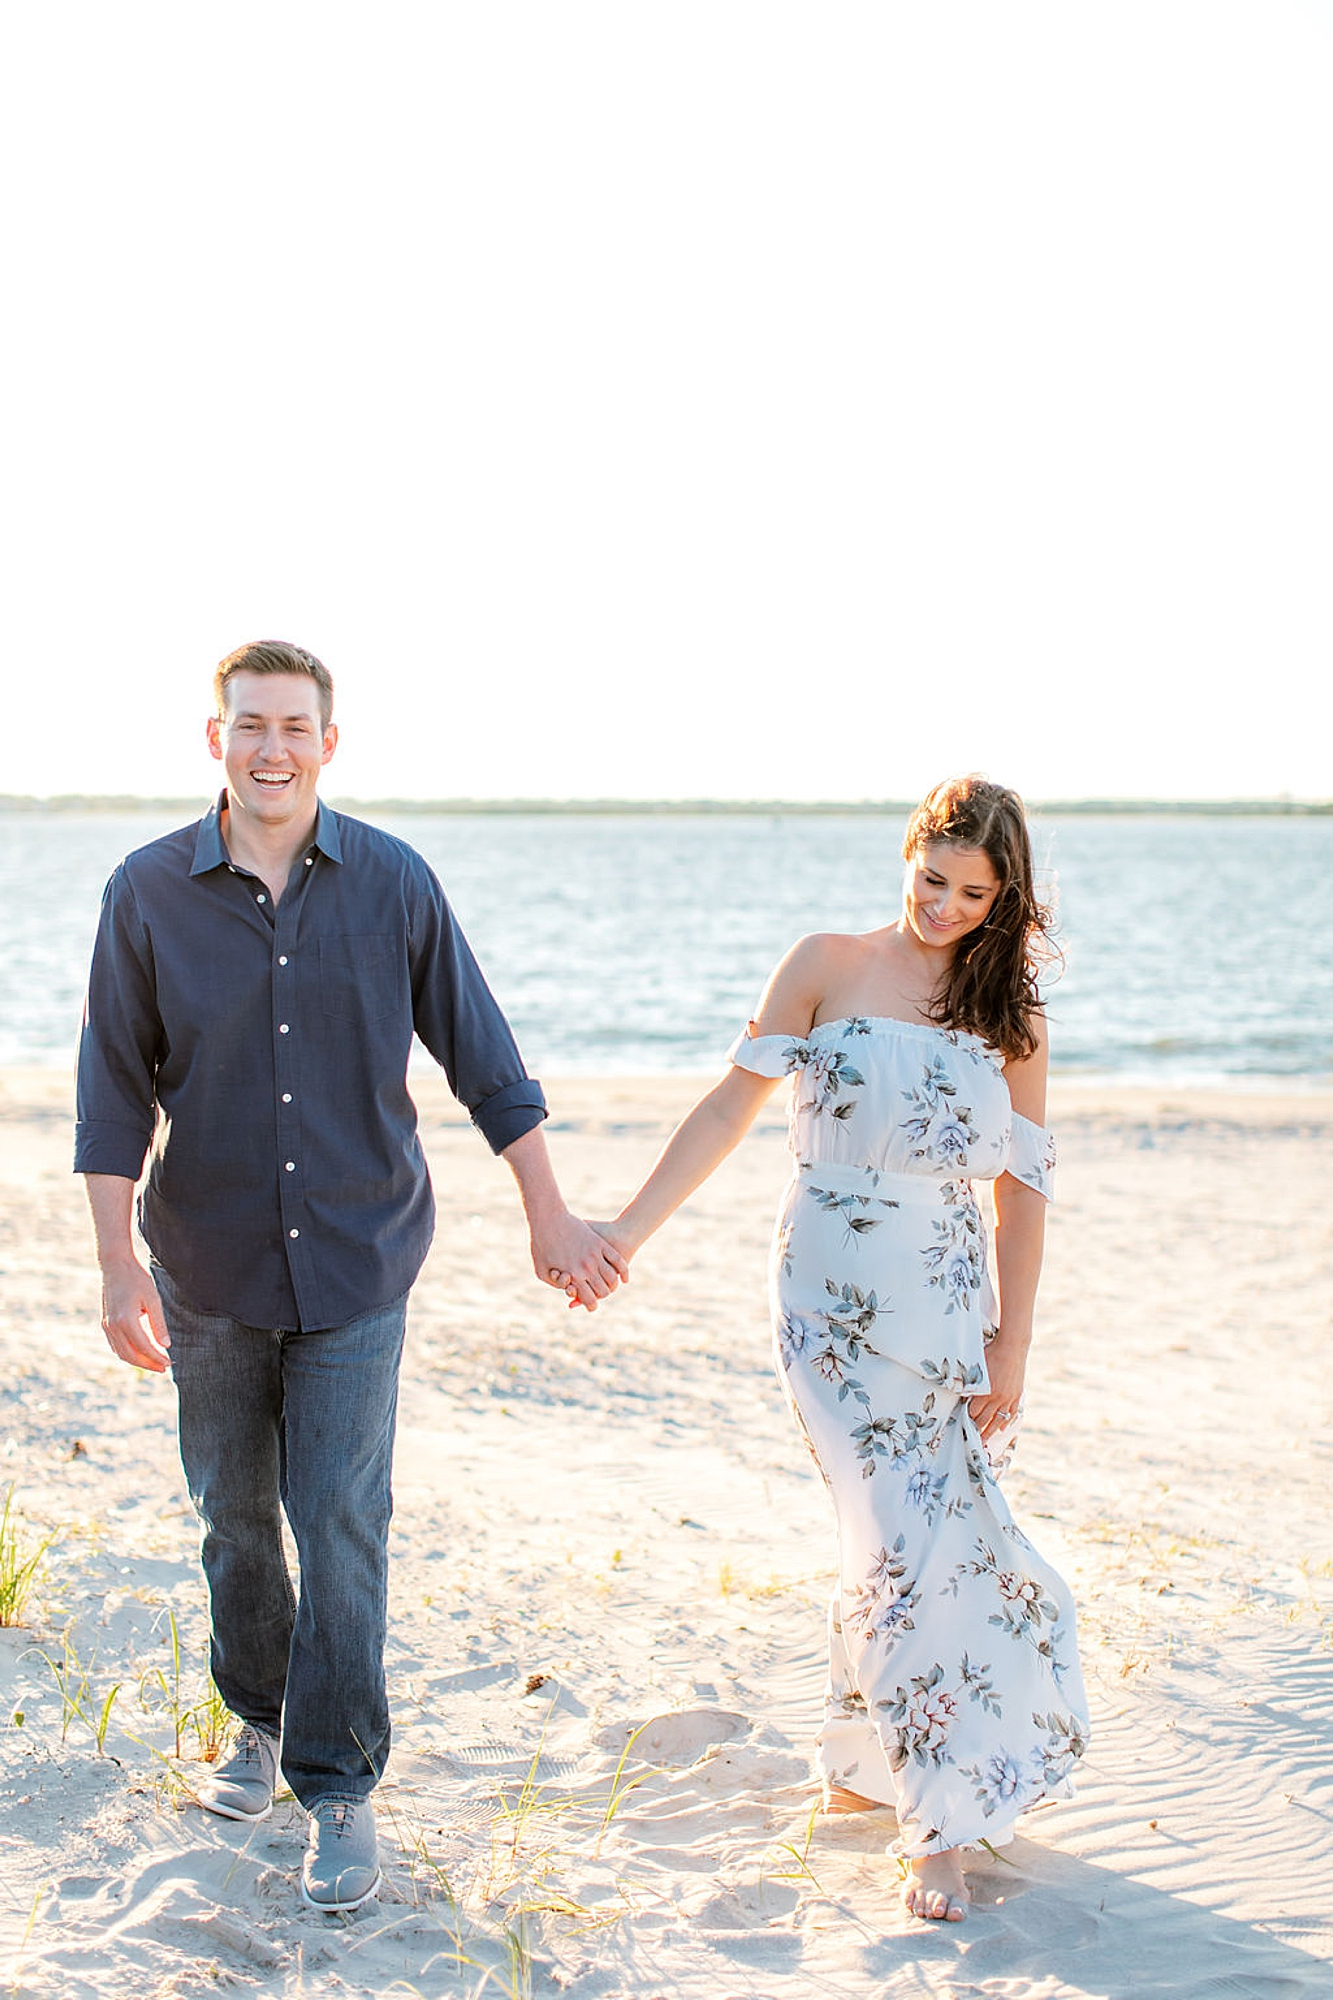 Film Engagement Session Photography in Ocean City NJ by Magdalena Studios 0041